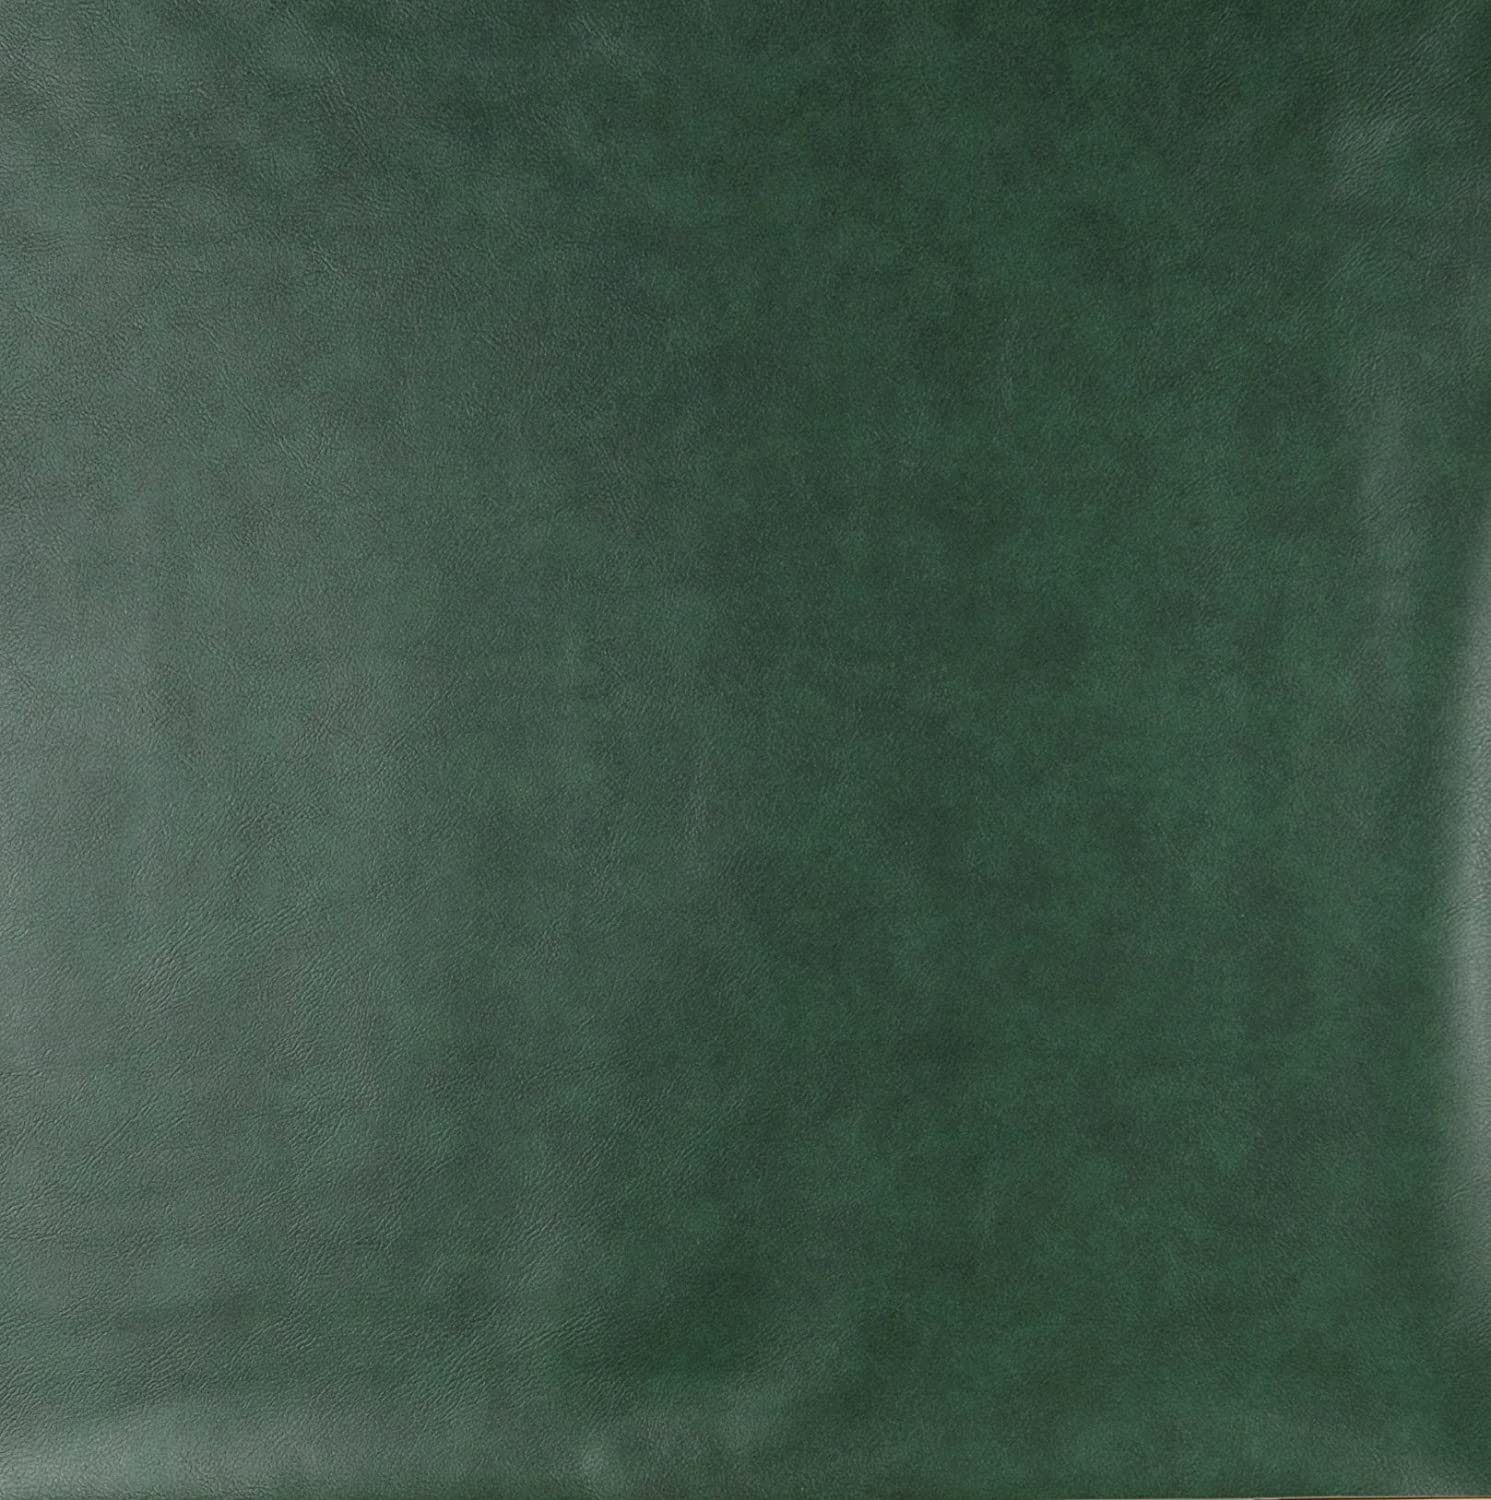 Green Vinyl Wholesale Commercial Grade By The Roll 40 Yard Bolt by Discounted Designer Fabrics   B00MQ8R9F8